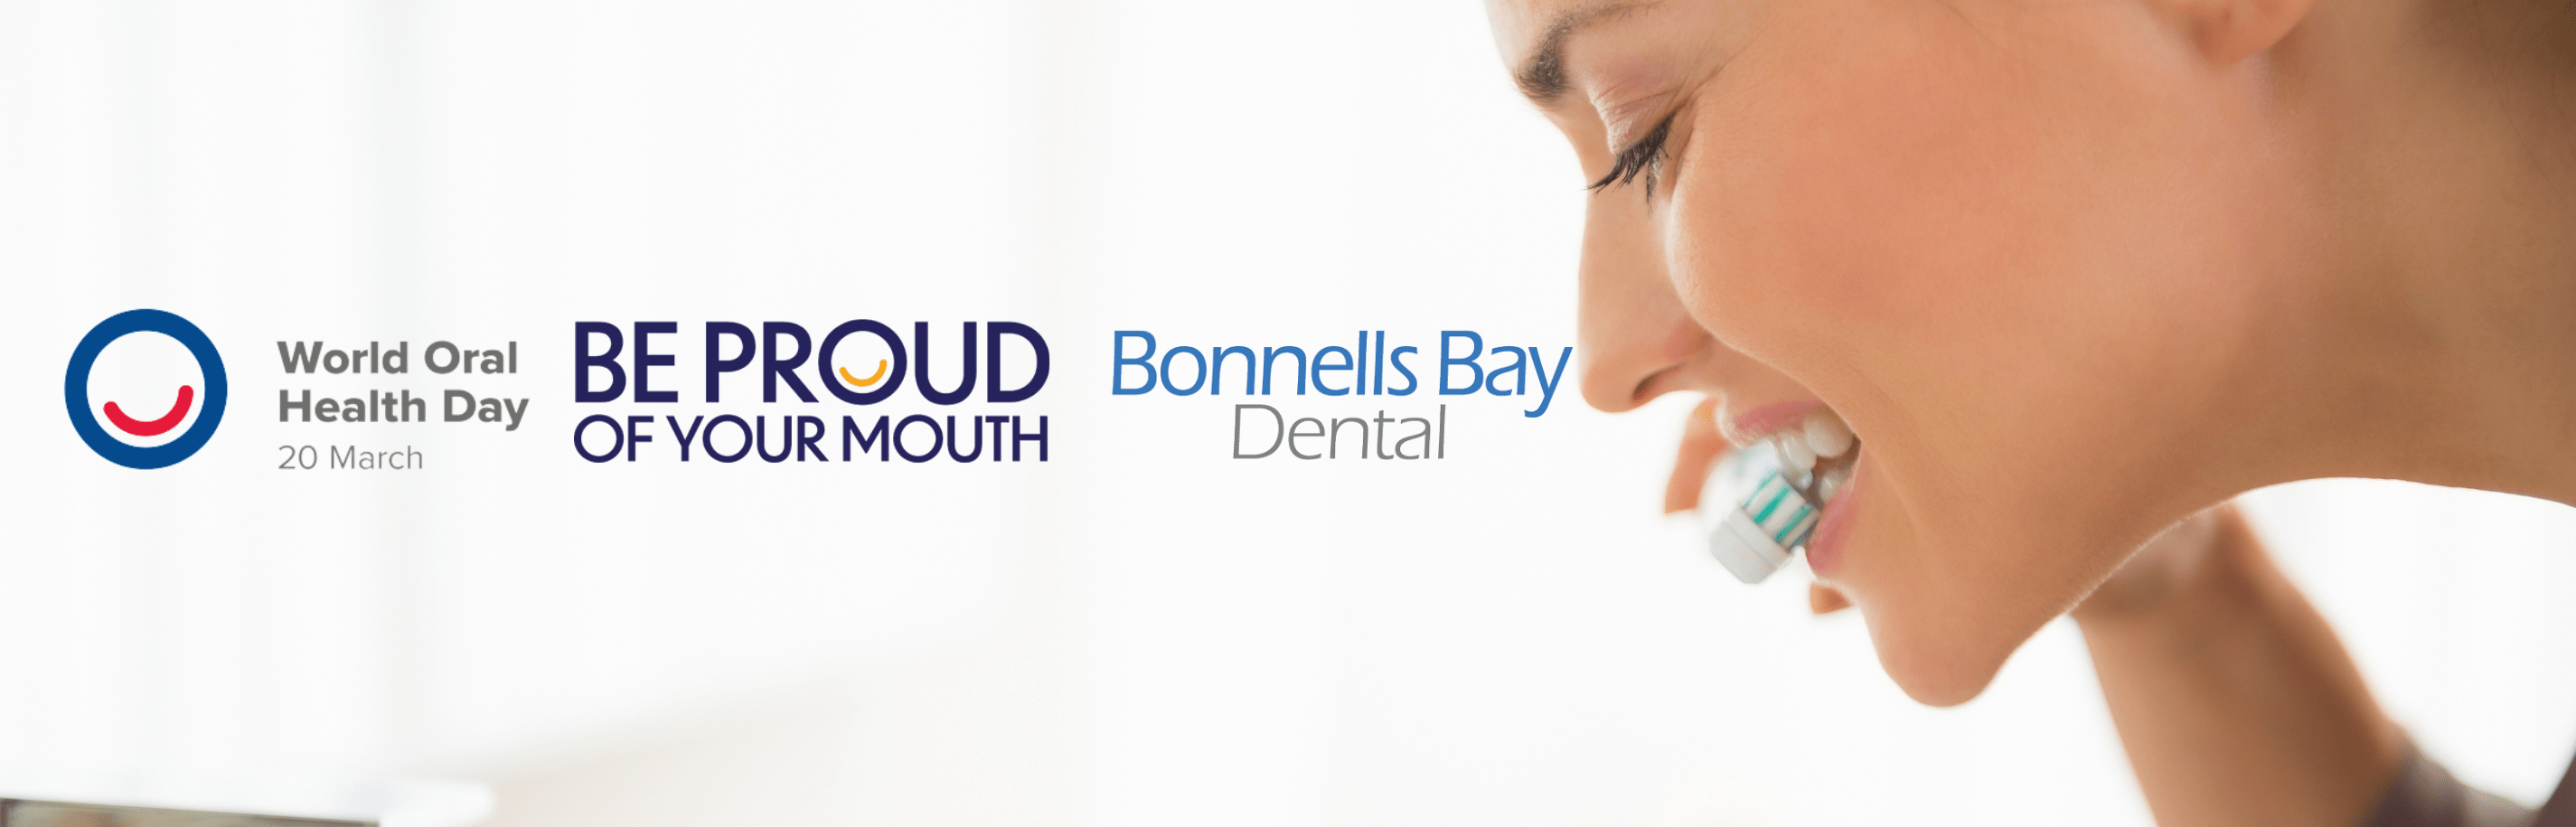 World Oral Health Day – Be Proud of Your Mouth!